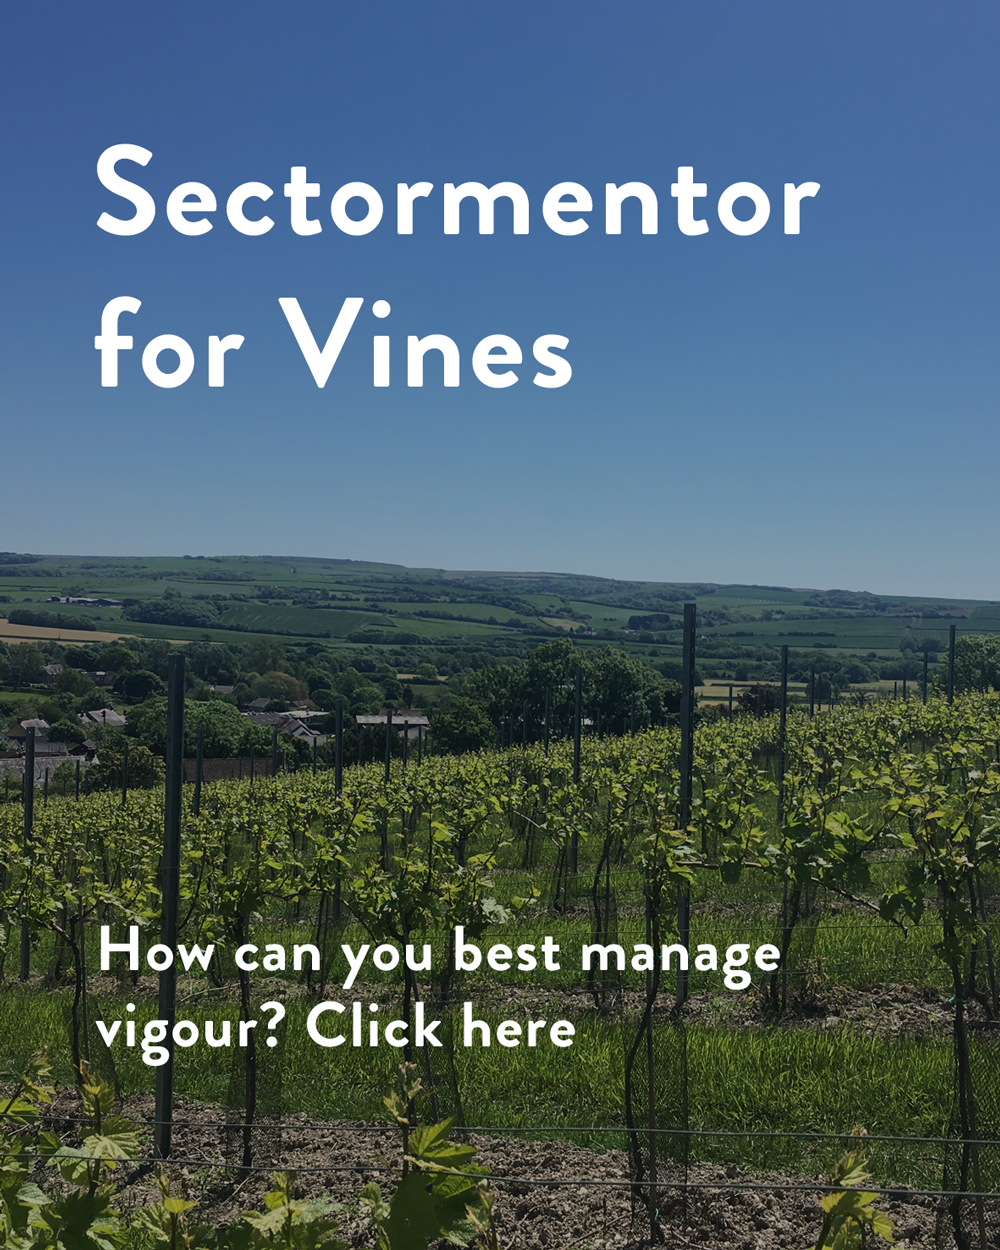 vines.sectormentor.com